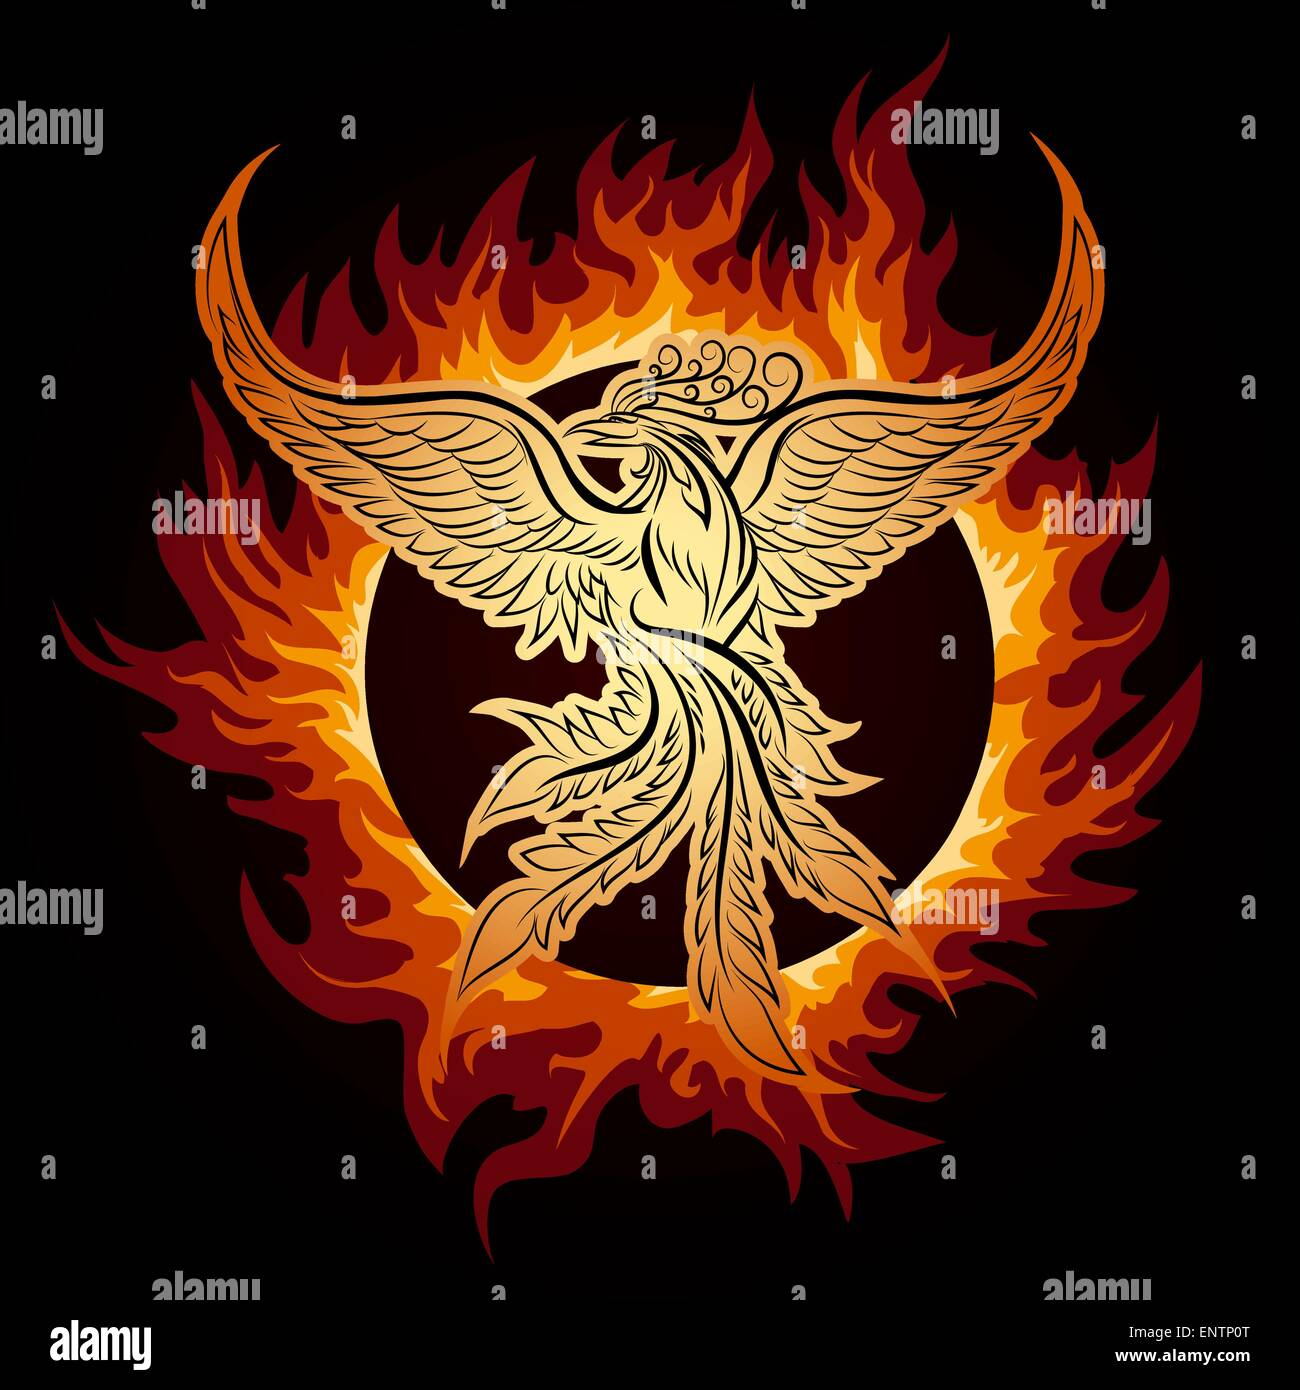 The Phoenix Flying In Ring Of Fire.